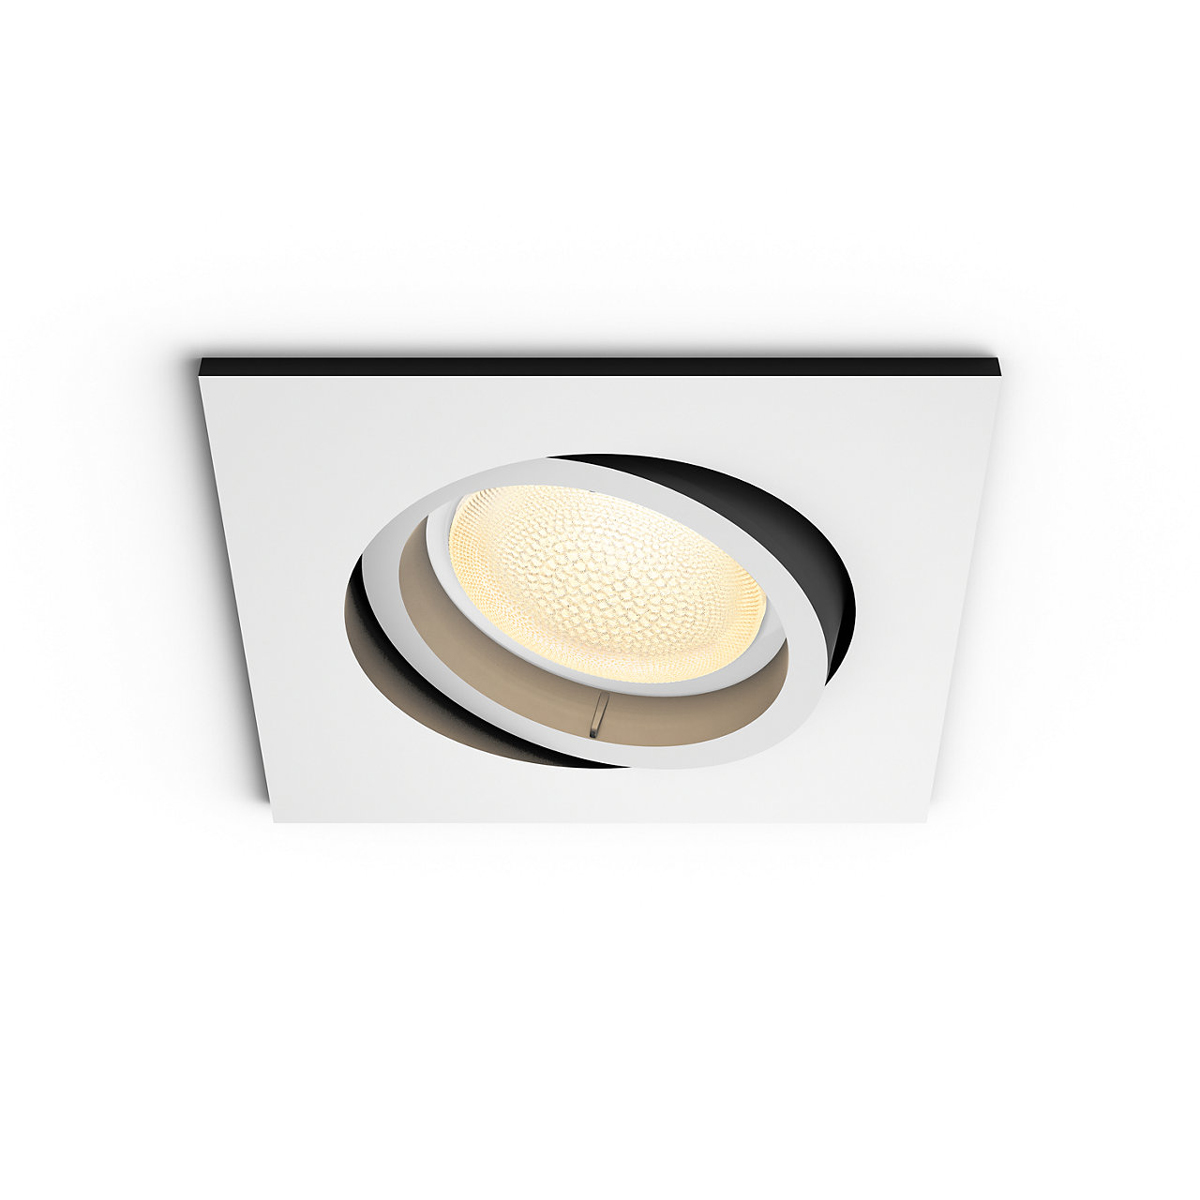 Philips Hue White and Colour Ambiance Centura Recessed Spot (square) Review